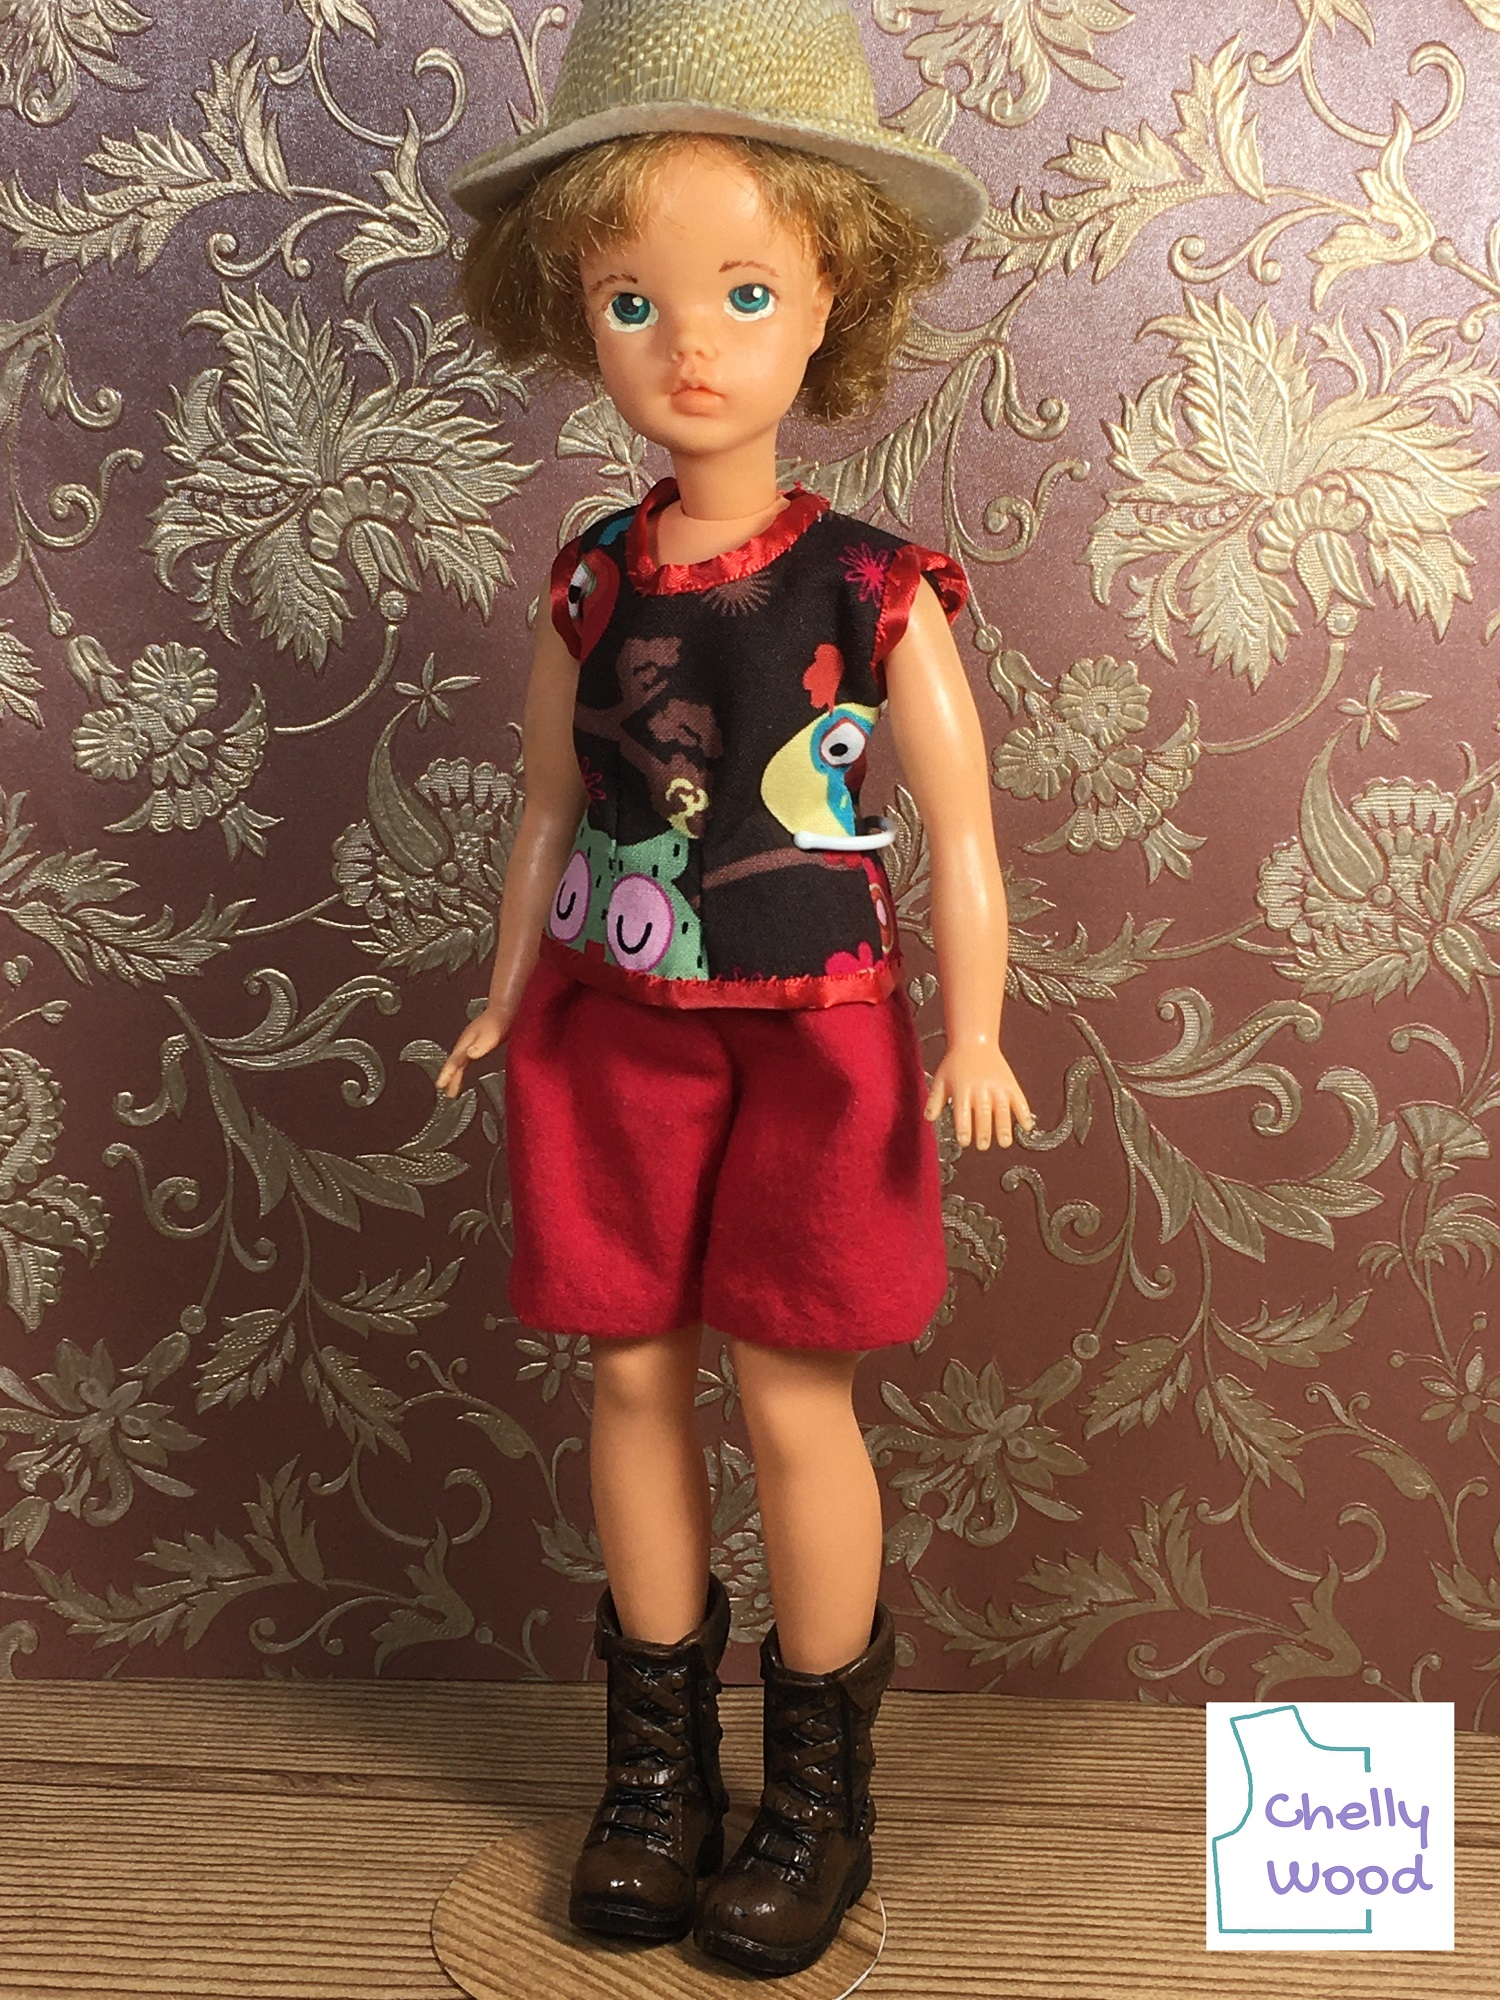 """In this photo, we see a vintage Tammy doll from Ideal Toy Corp. wearing a safari outfit or hiking gear, complete with a straw hat and little plastic boots. Her shorts are made of red flannel. Her shirt is cotton, trimmed in red ribbon. The overlay says, """"Chelly Wood"""" and indicates that the patterns and tutorials for making this outfit can be found at ChellyWood.com"""